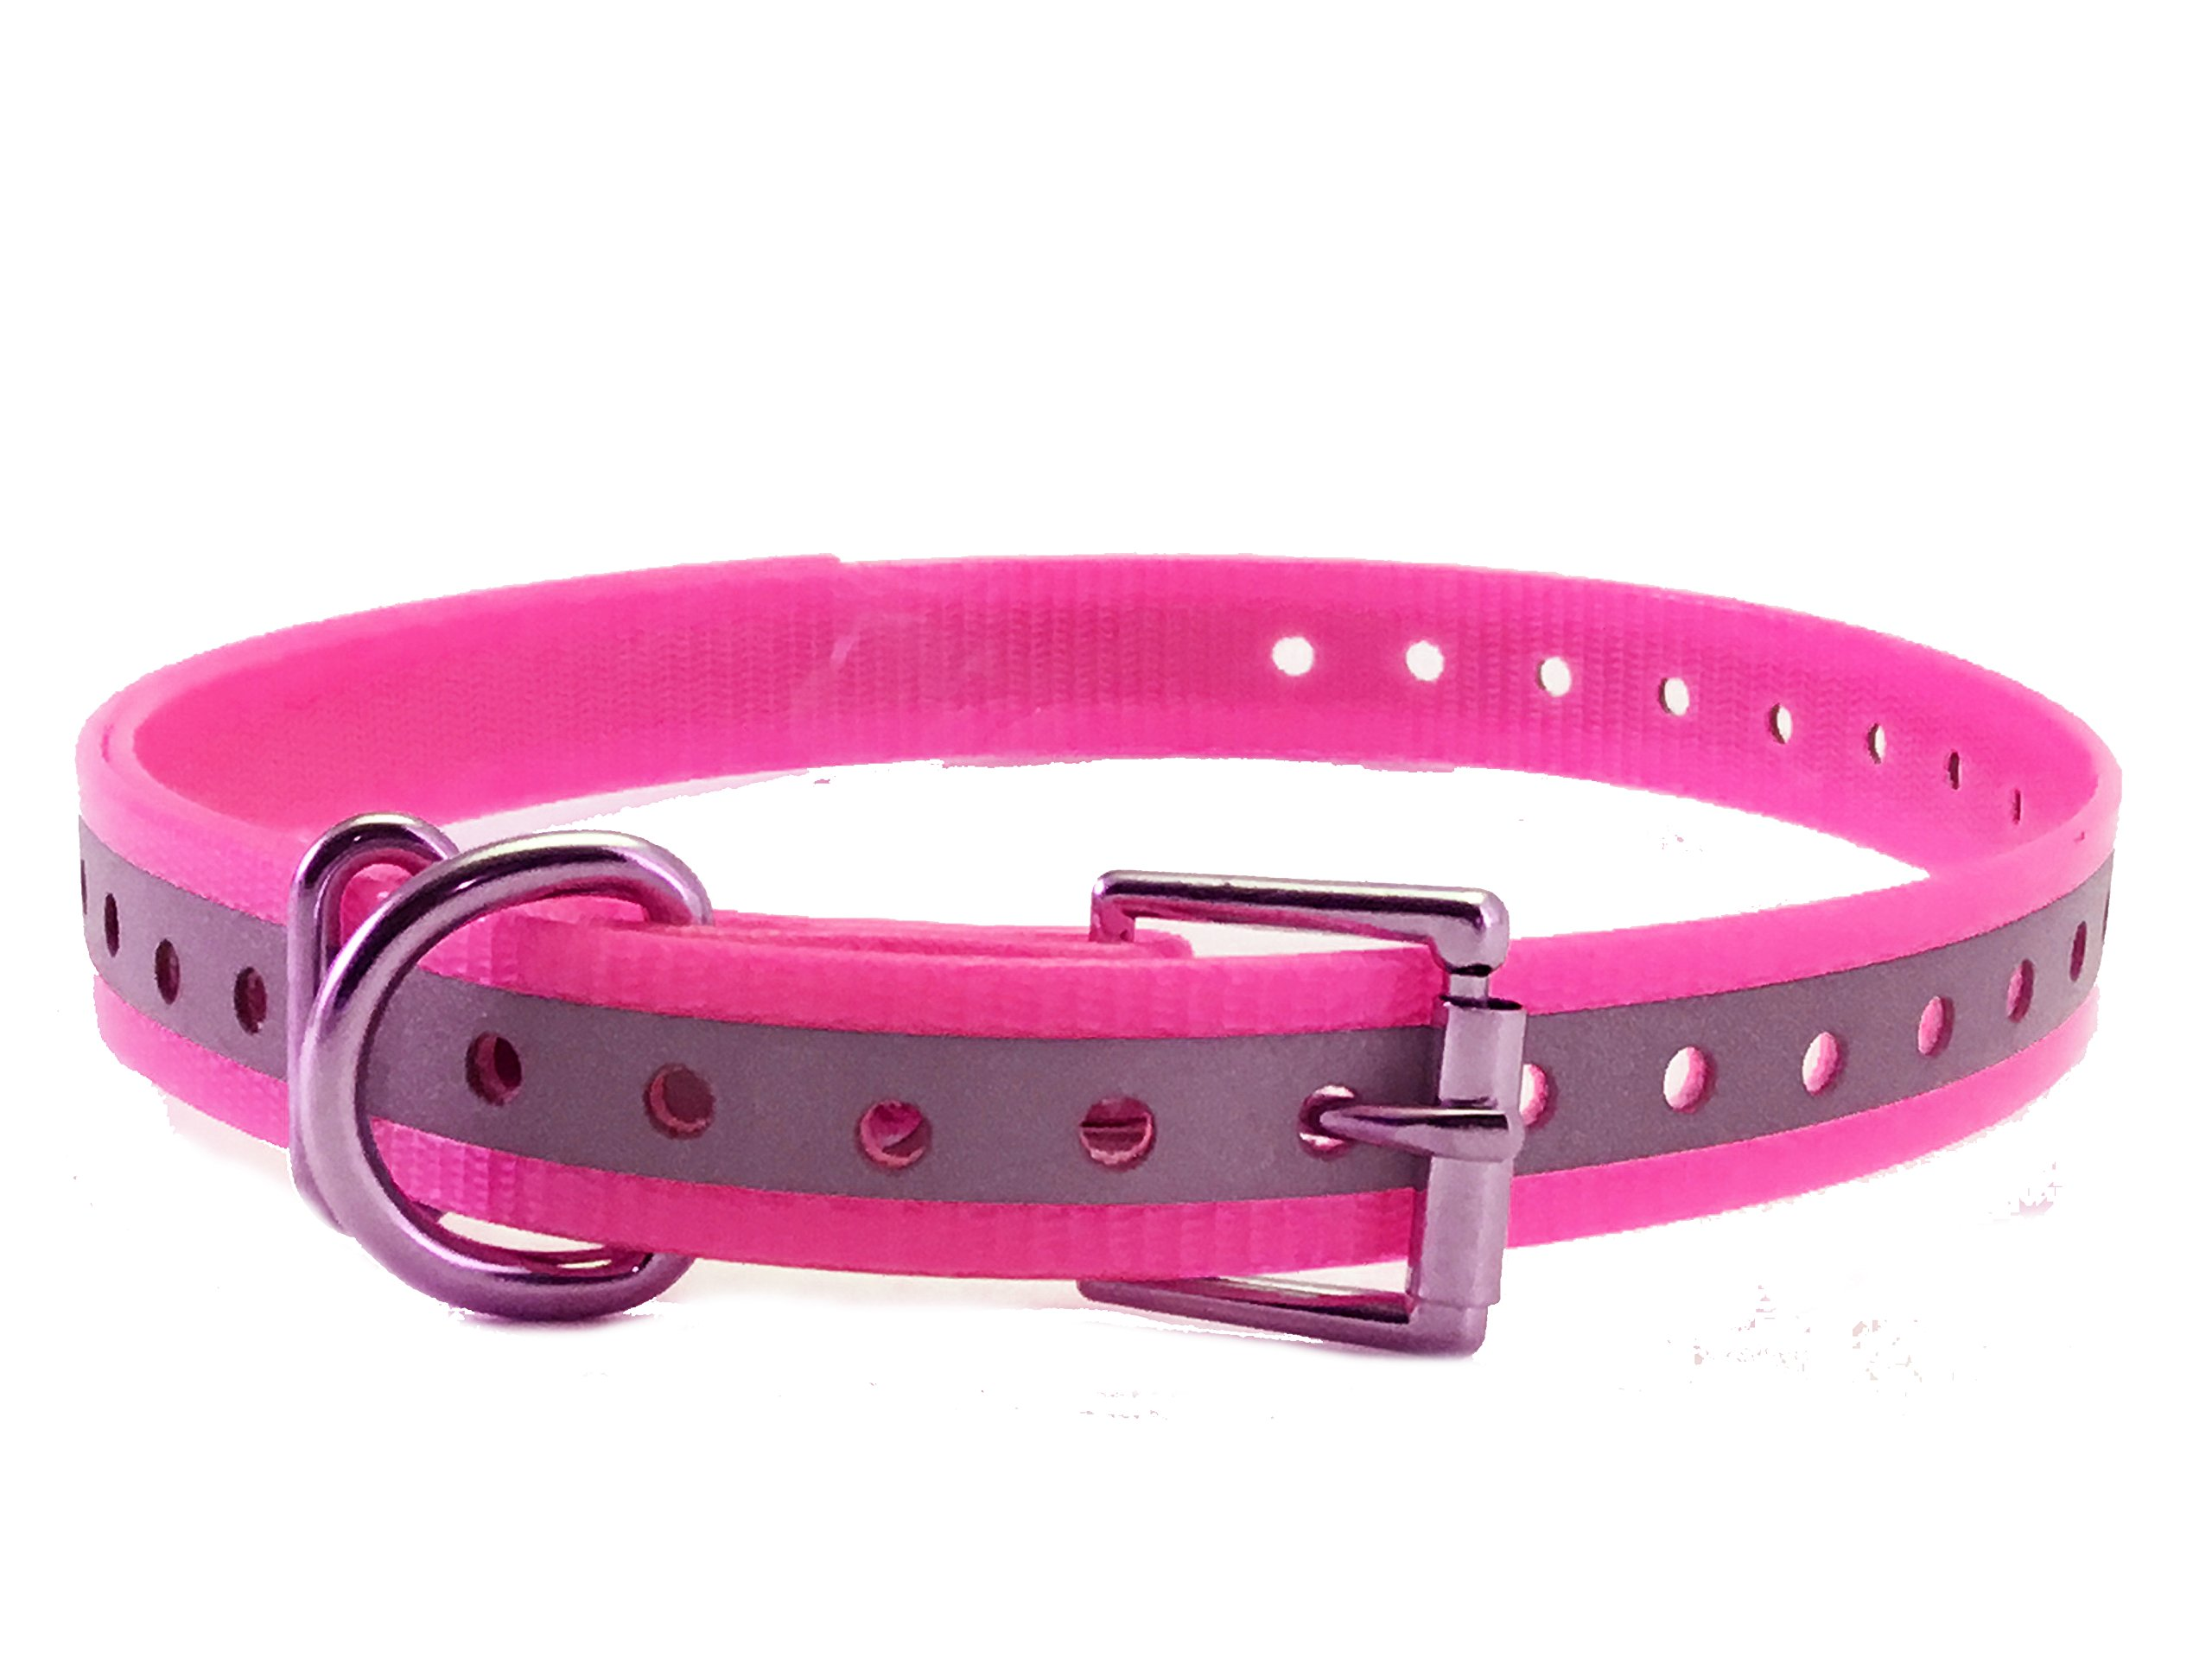 Sparky PetCo 3/4'' High Flex, Neon Pink Reflective Waterproof Replacement Roller Buckle Dog Collar for Garmin Delta, SportDOG, PetSafe, Reflective Pink